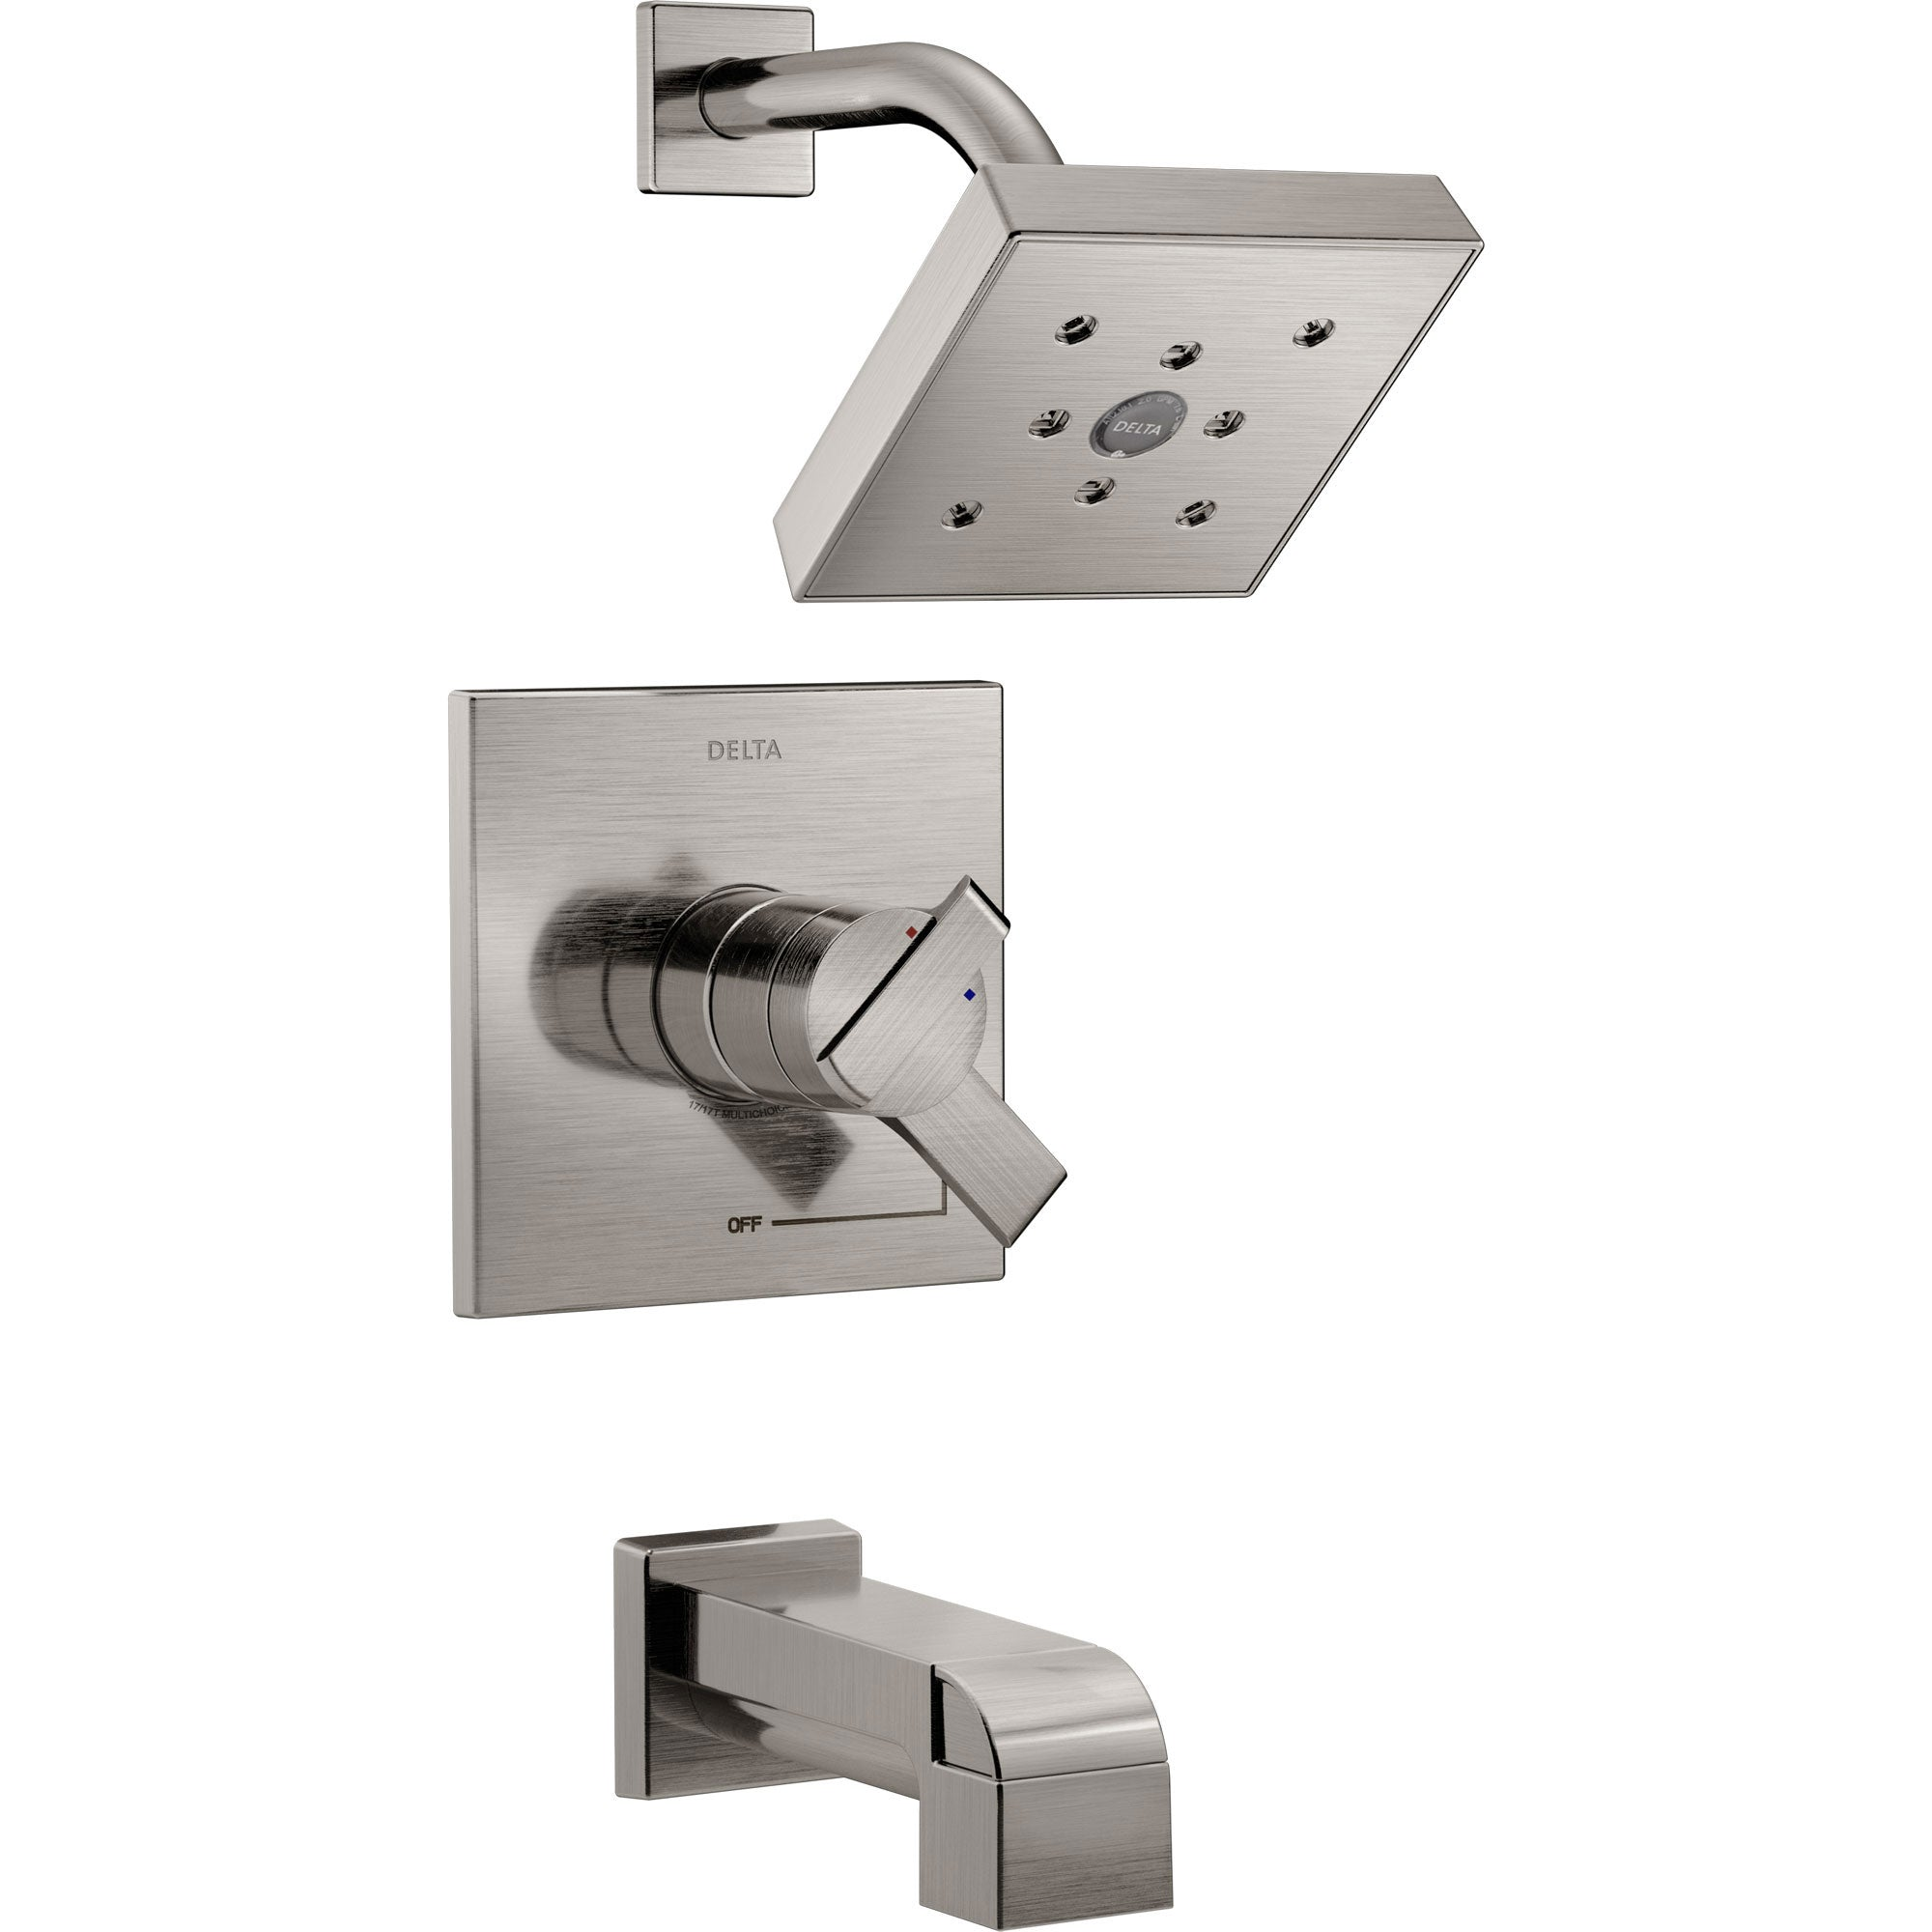 Delta Ara Modern Stainless Steel Finish H2Okinetic Tub and Shower Combination Faucet with Dual Temperature and Pressure Control INCLUDES Rough-in Valve D1112V